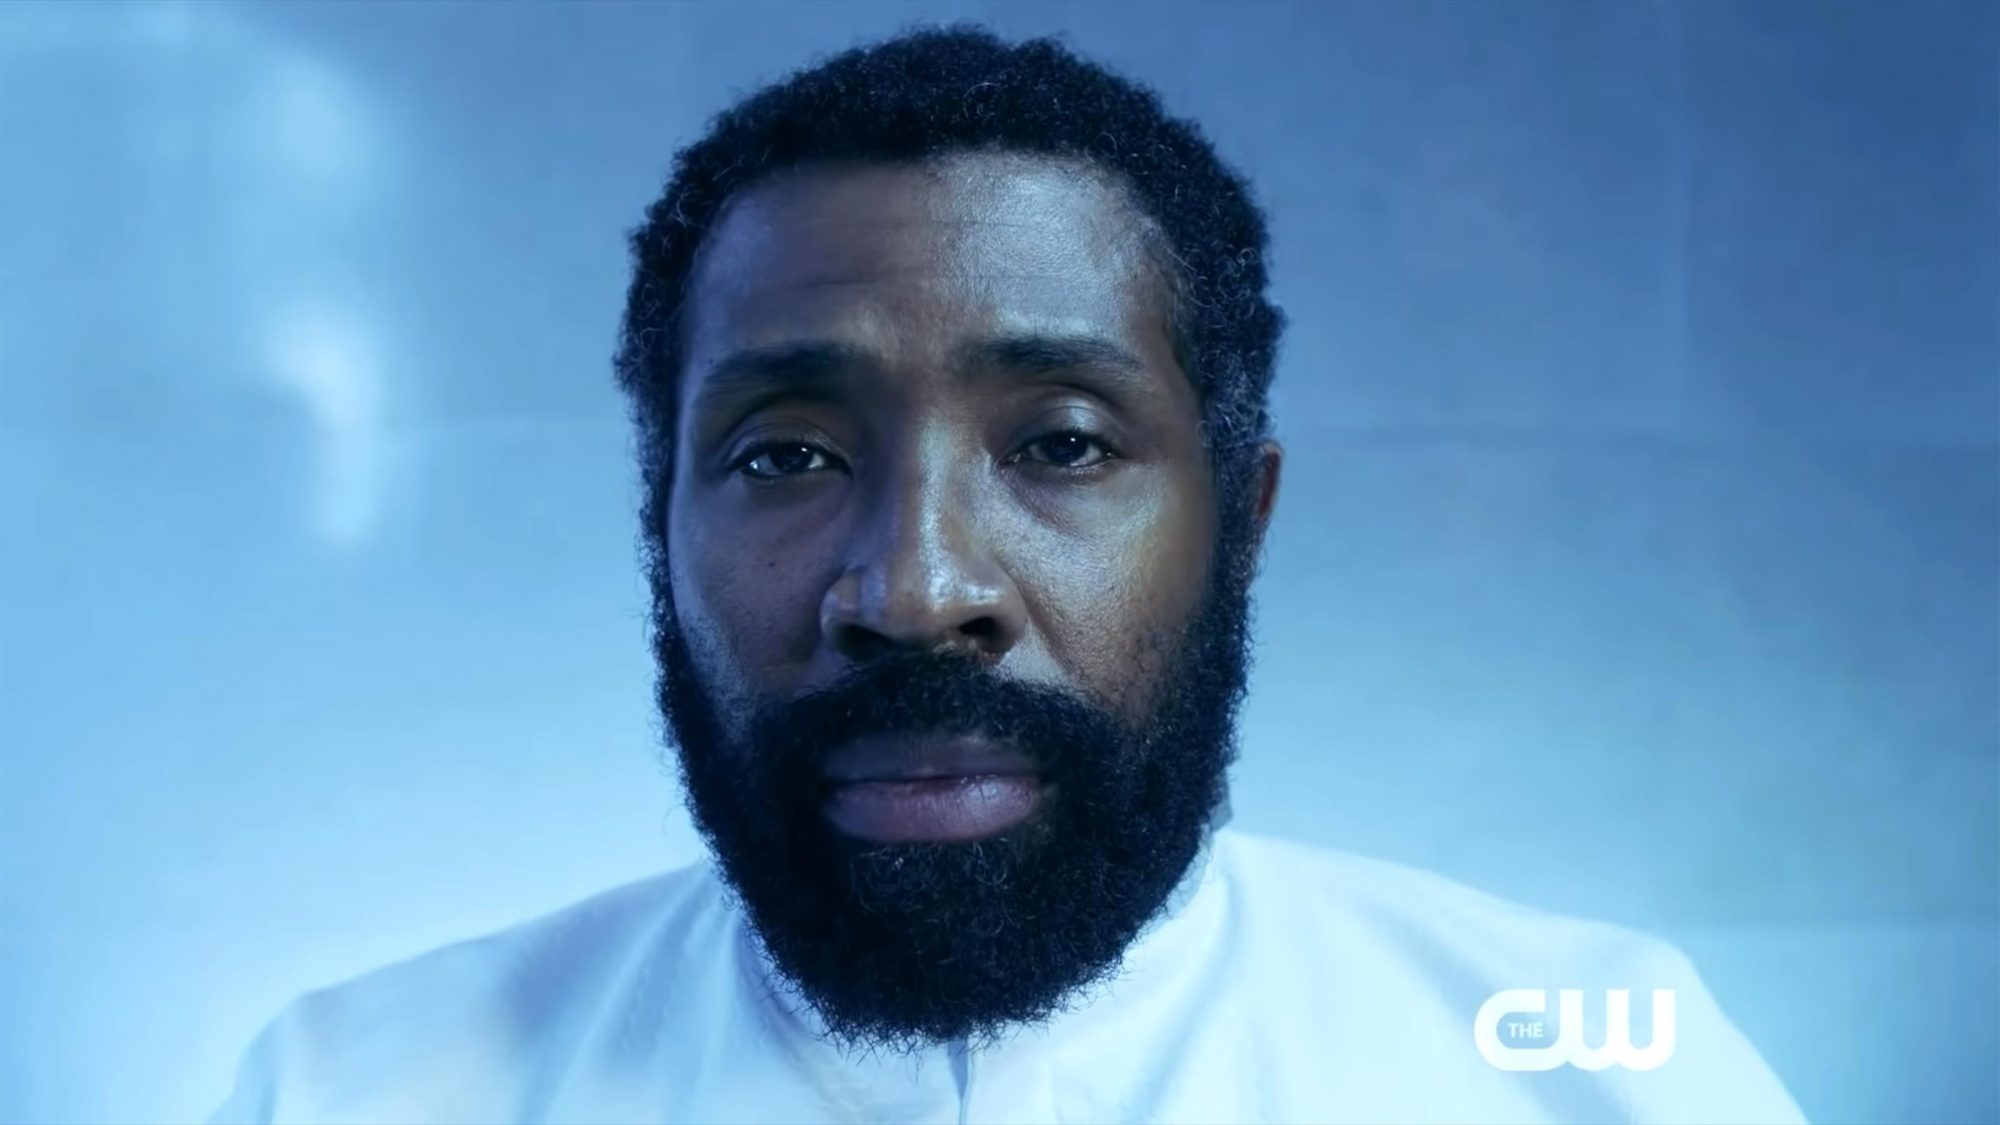 Black Lightning | Season 3 Extended Trailer | The CW (screen grab) https://www.youtube.com/watch?v=vcHG6xoU6fw CR: The CW